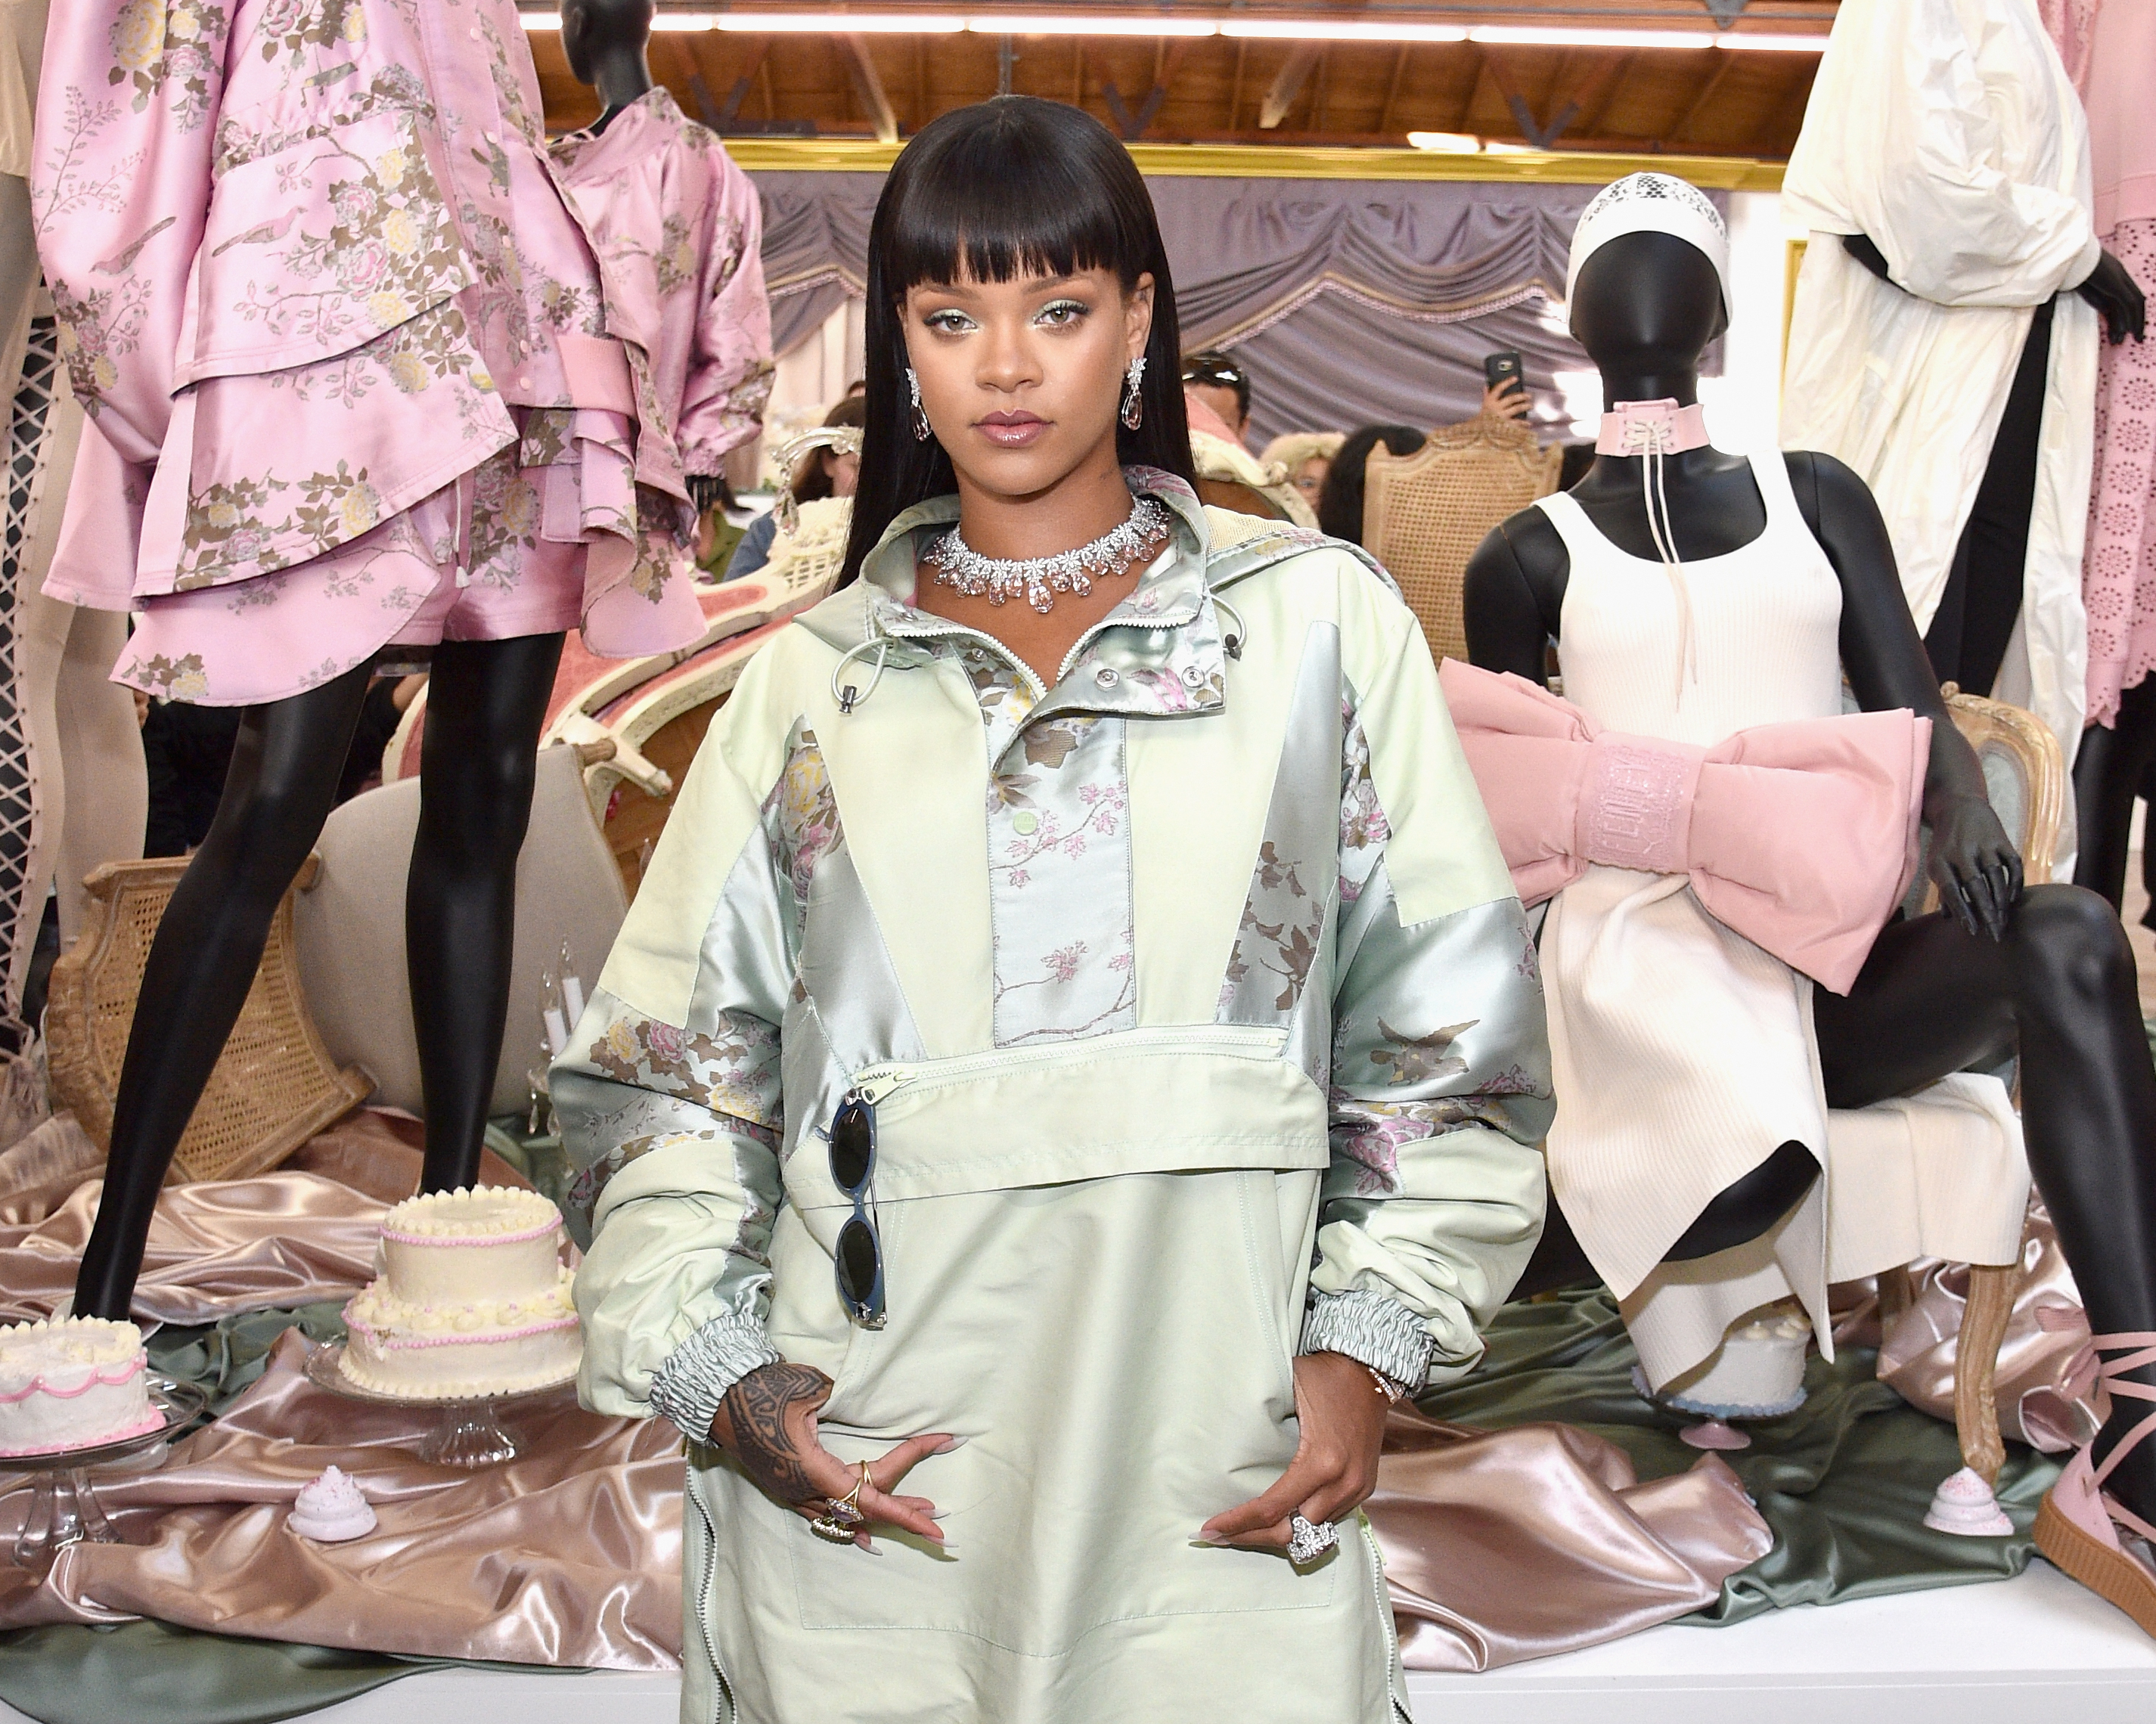 Rihanna played cashier at her pop-up event — and you better have her money